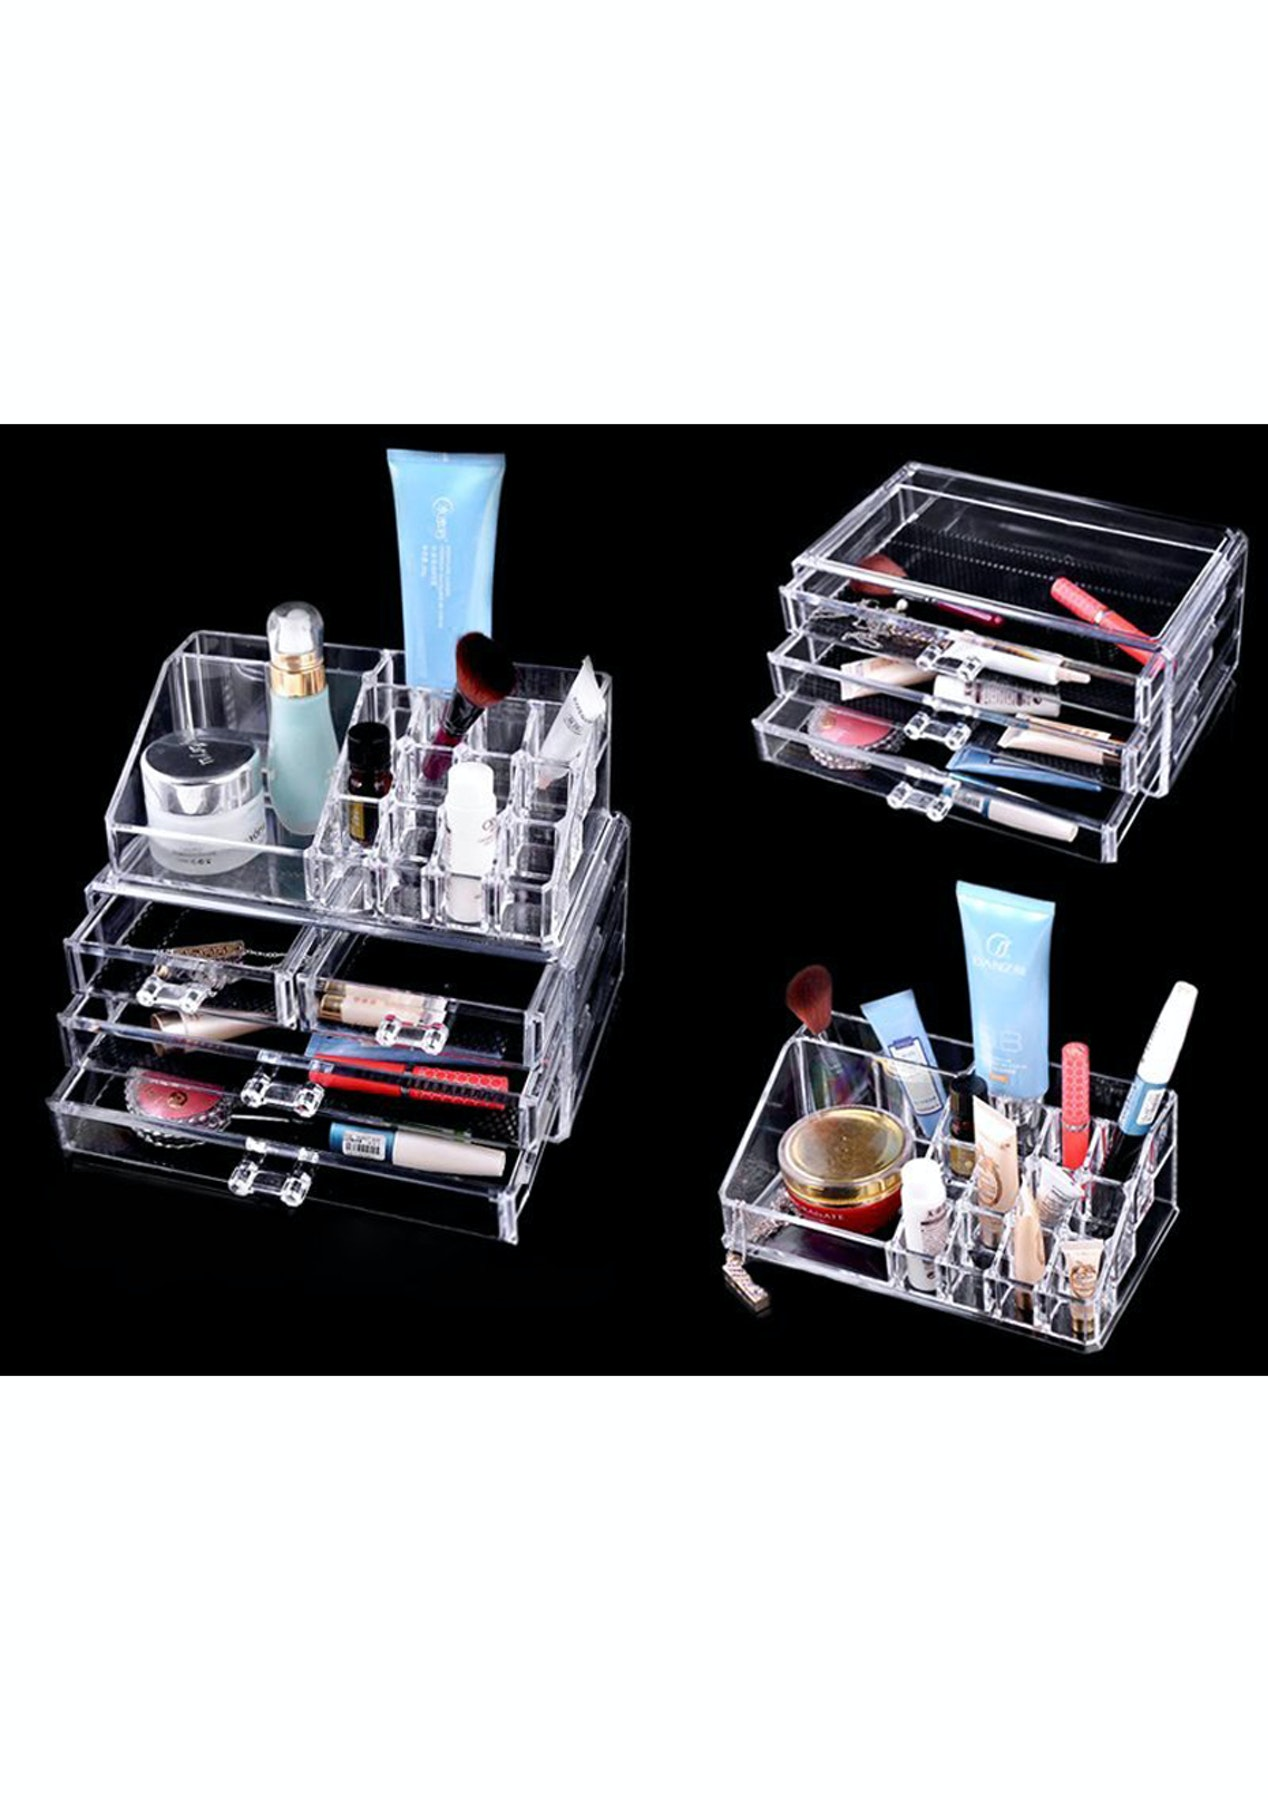 4 Drawer Jewellery Cosmetic Storage Box  Cosmetic & Beauty